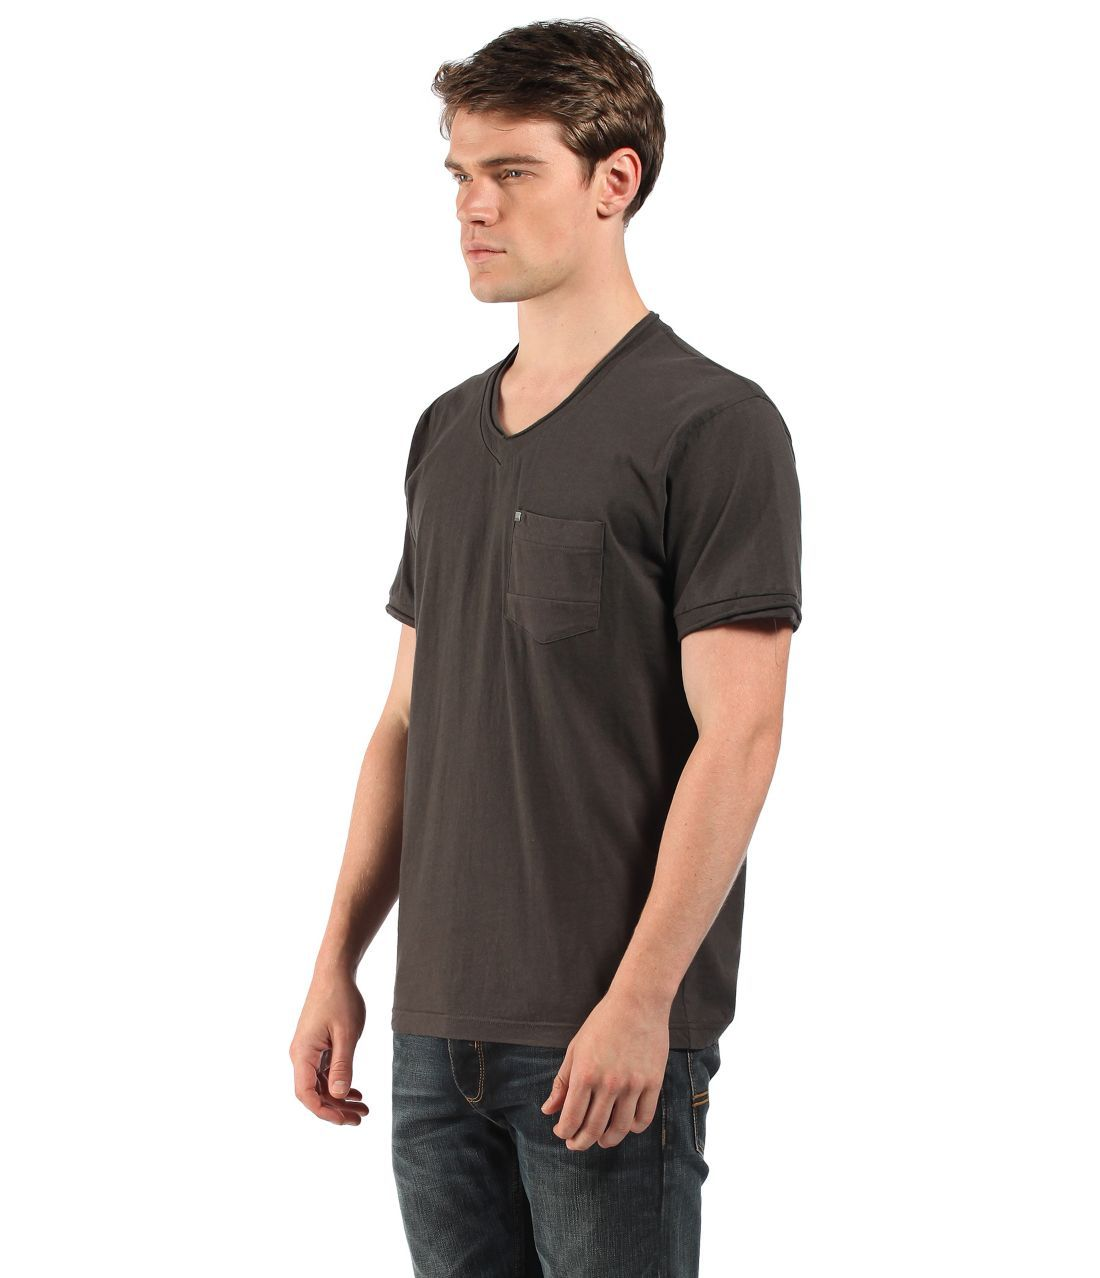 Cotton t shirt with v neck and pocket on front left